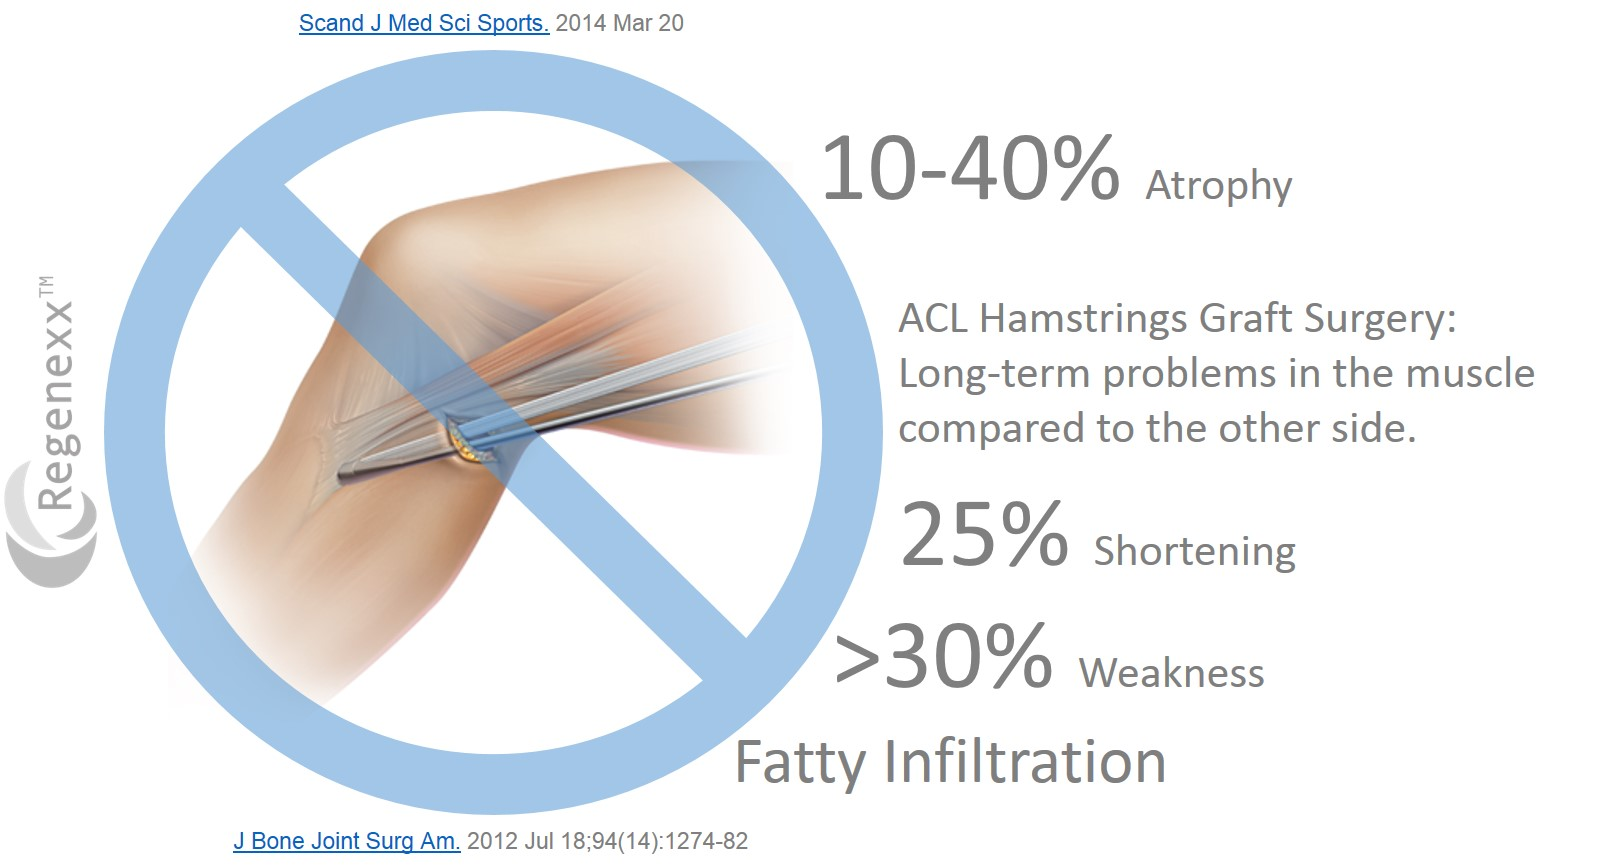 3 Usual Complications after ACL Surgery